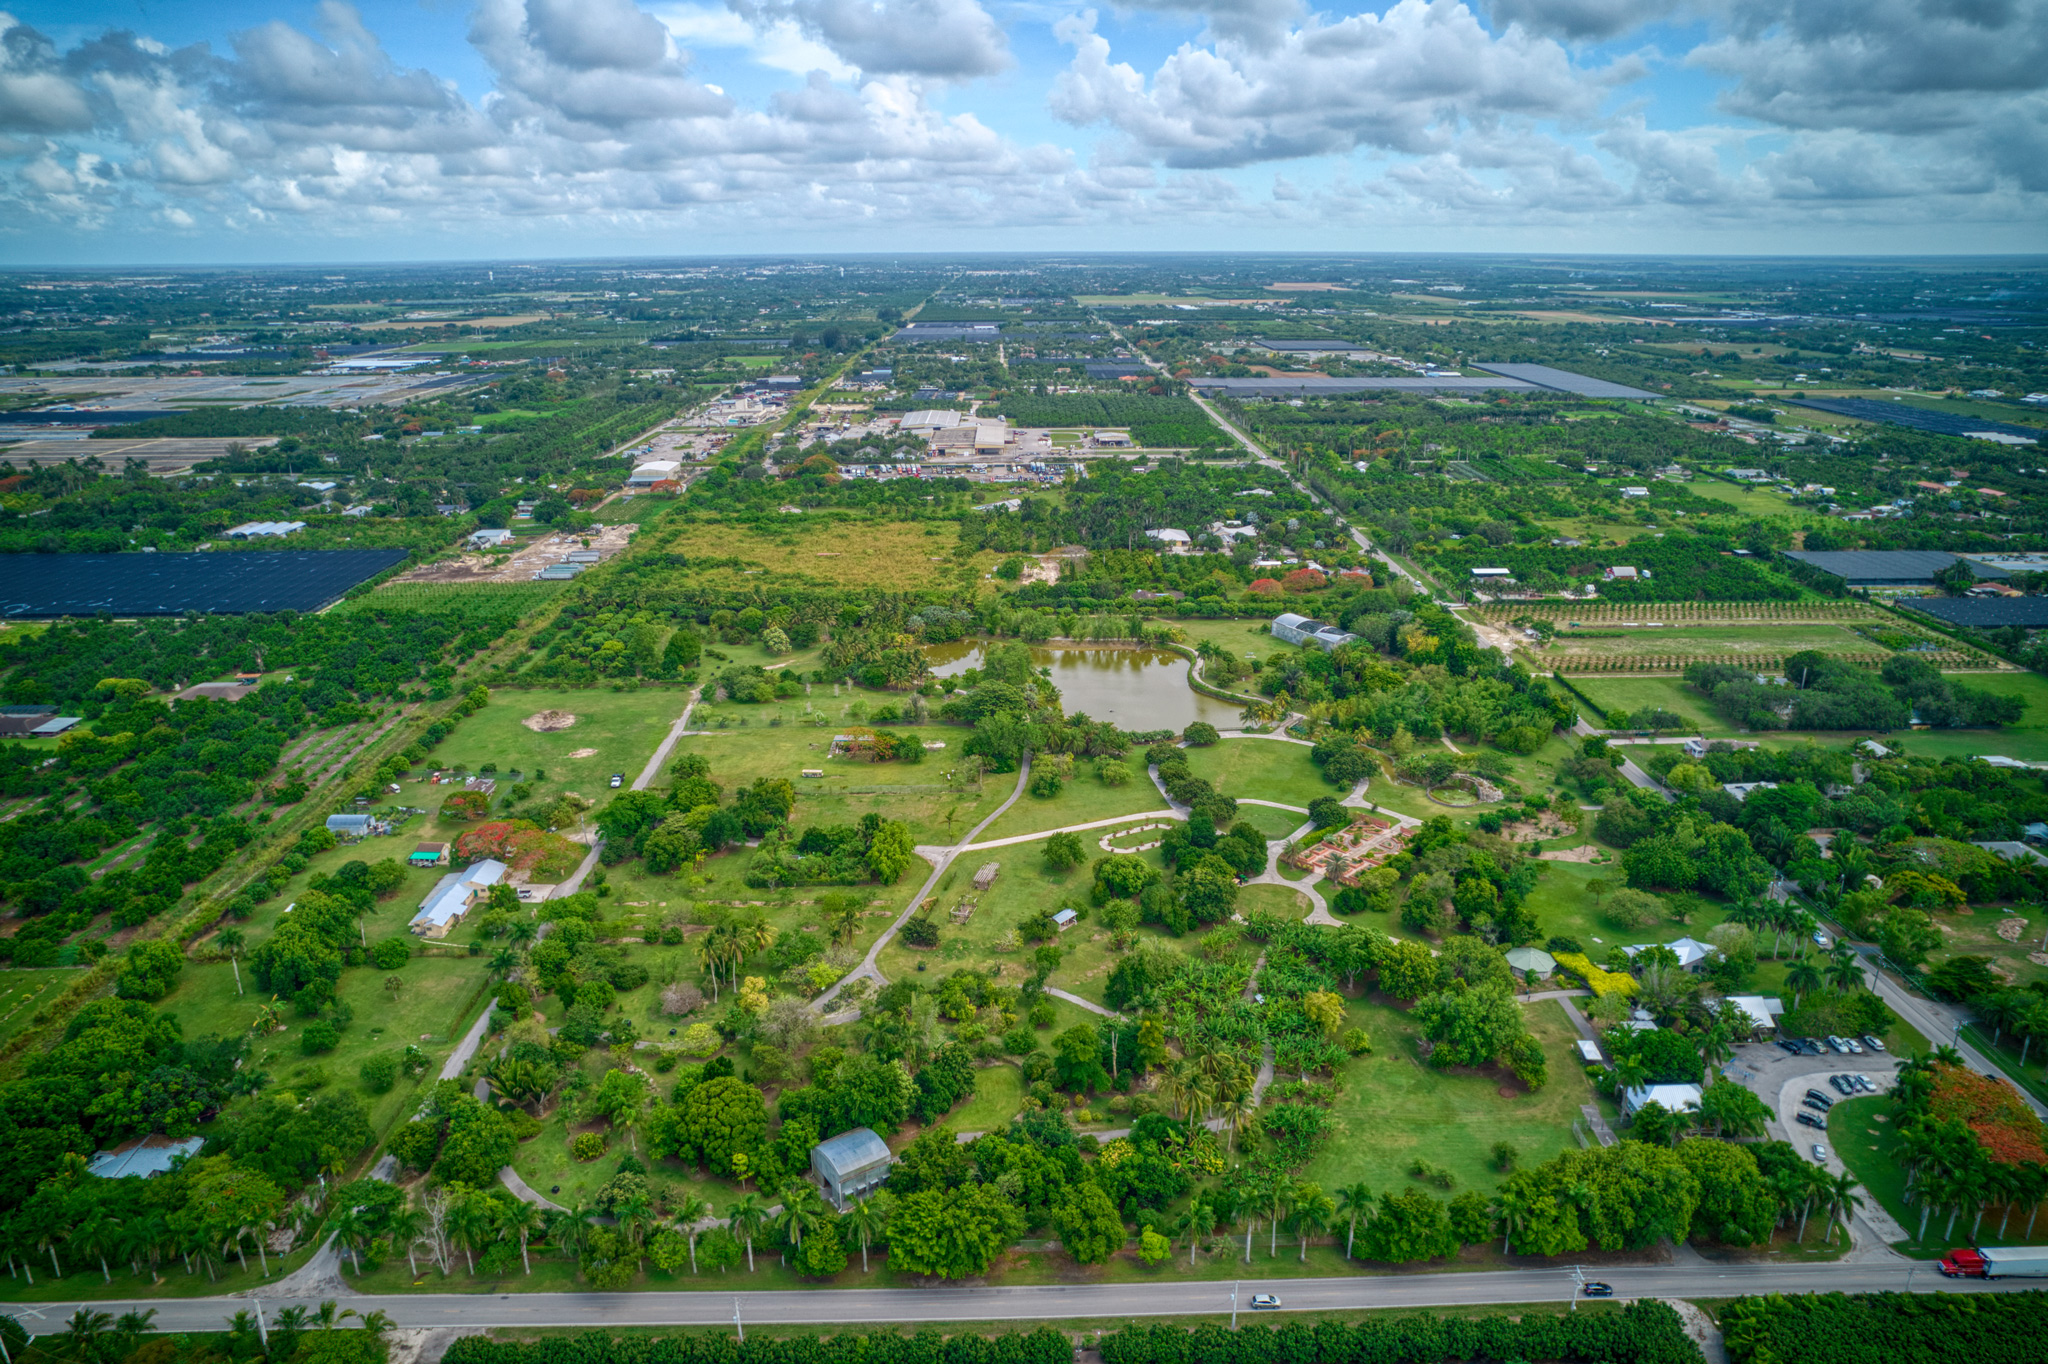 Fruit & Spice Park aerial view - south